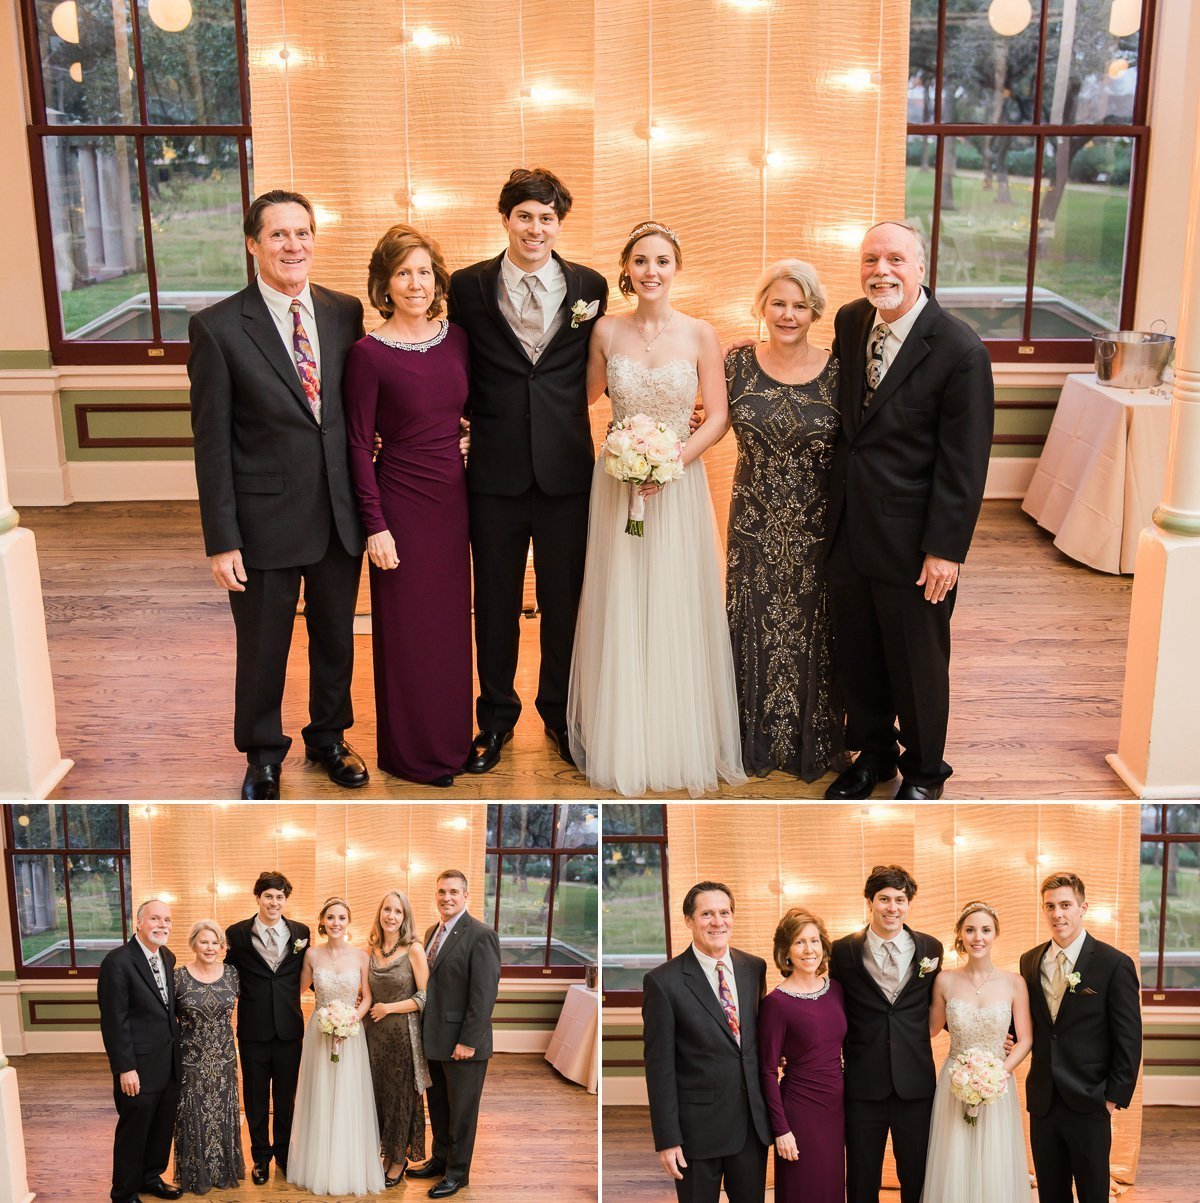 Laine-Spencer-Garten-Verein-Wedding 41